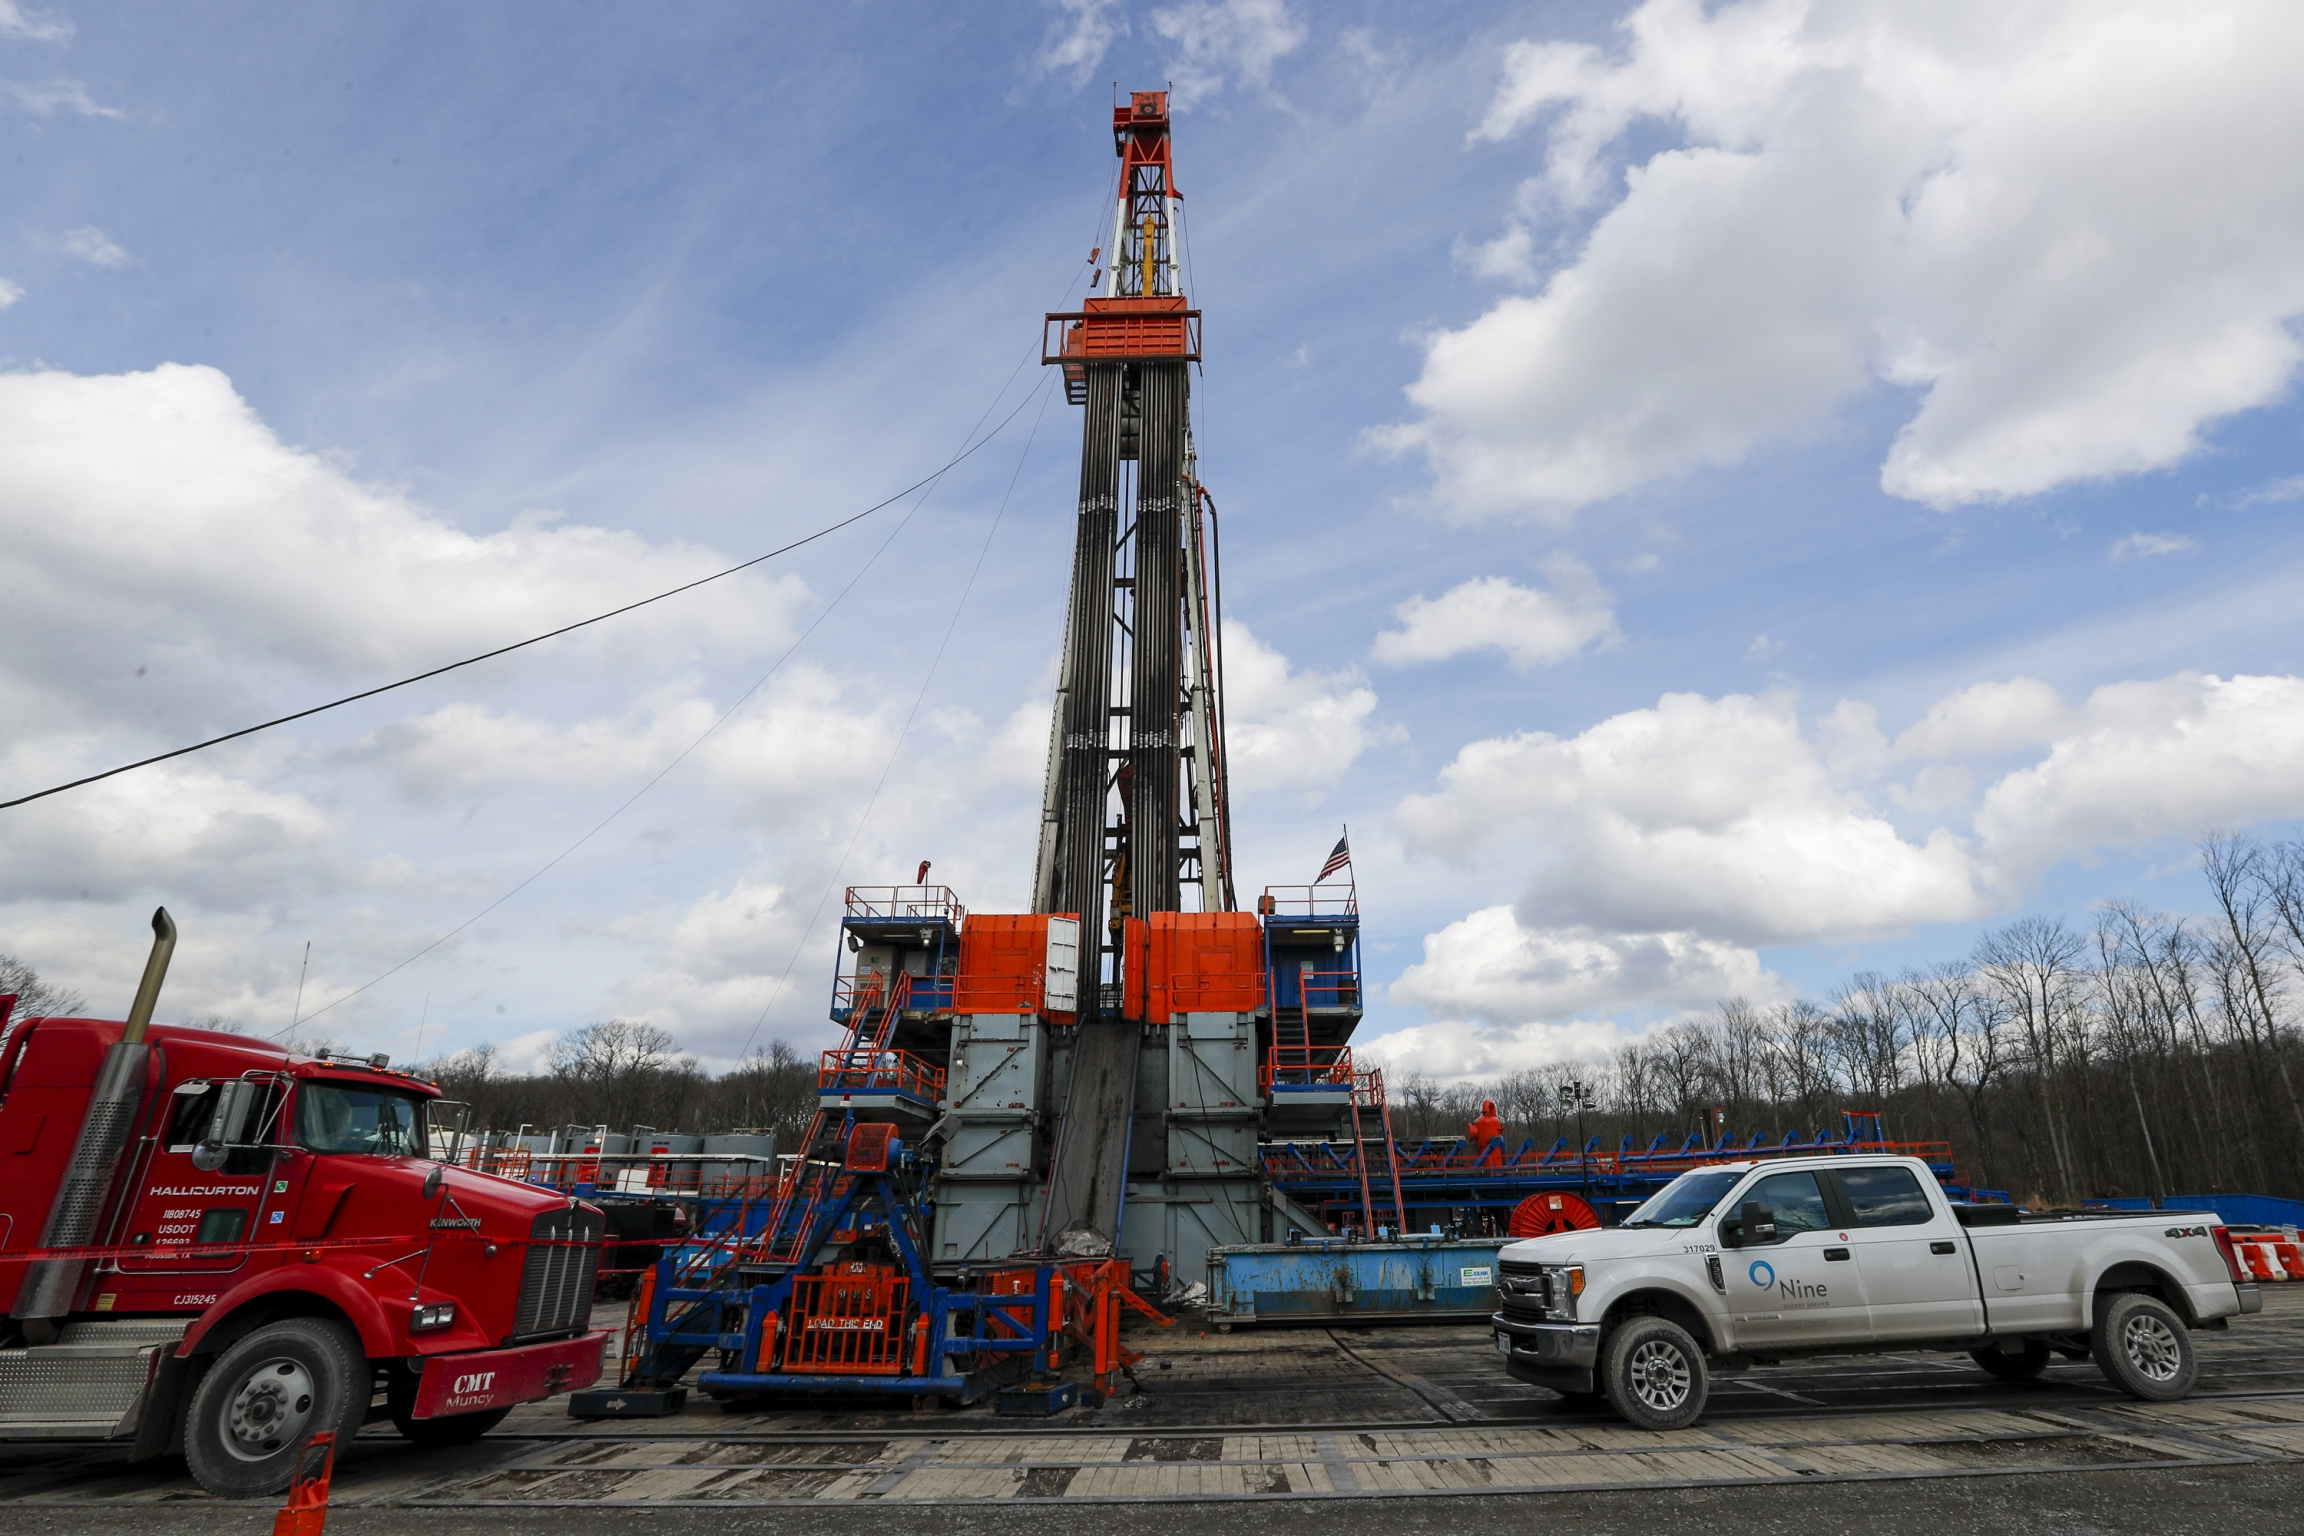 Red and white trucks flank a tall drilling well pictured against the sky